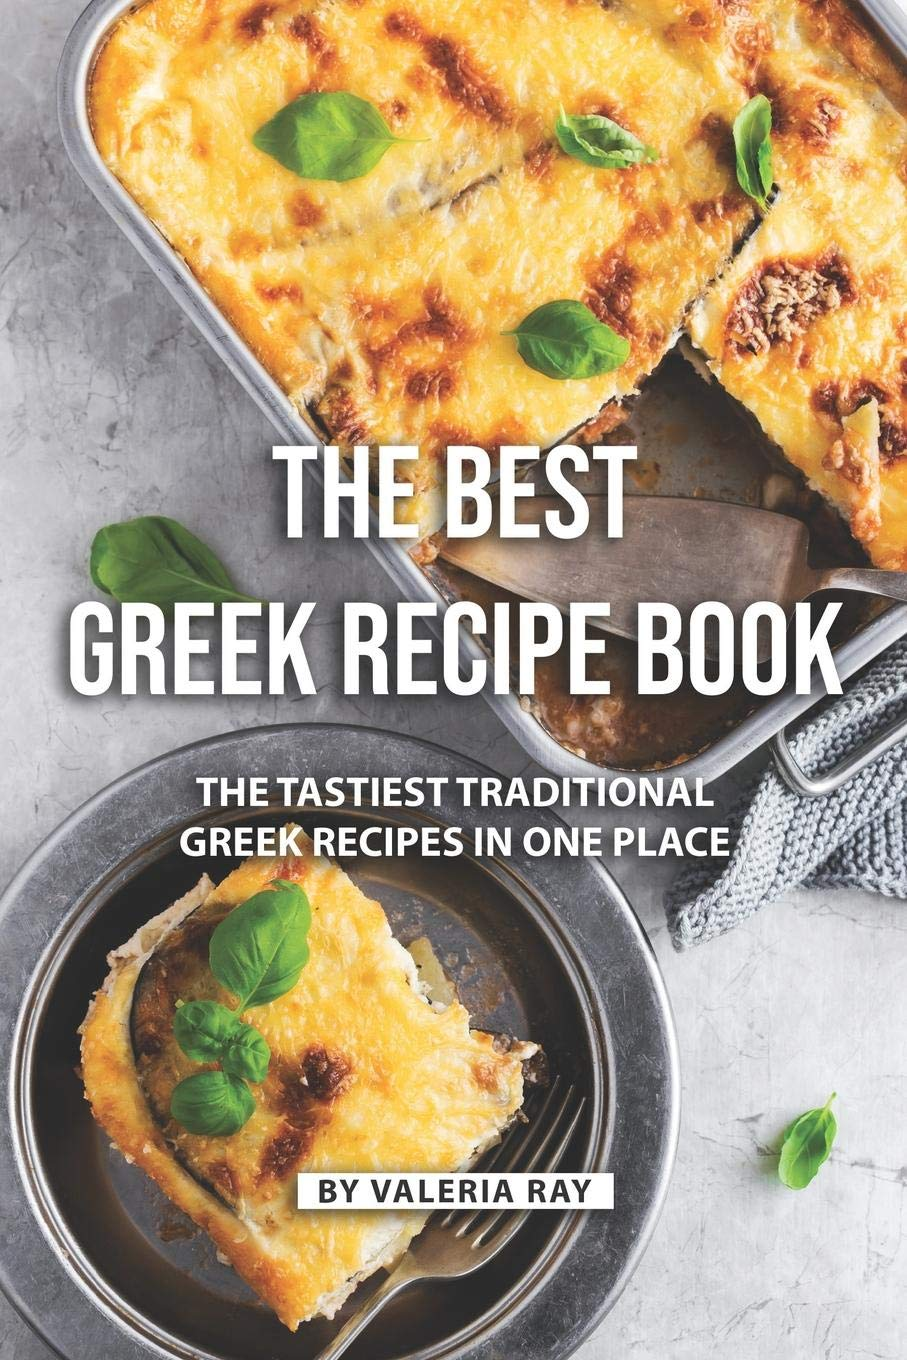 The Best Greek Recipe Book The Tastiest Traditional Greek Recipes In One Place Ray Valeria 9781080300143 Amazon Com Books